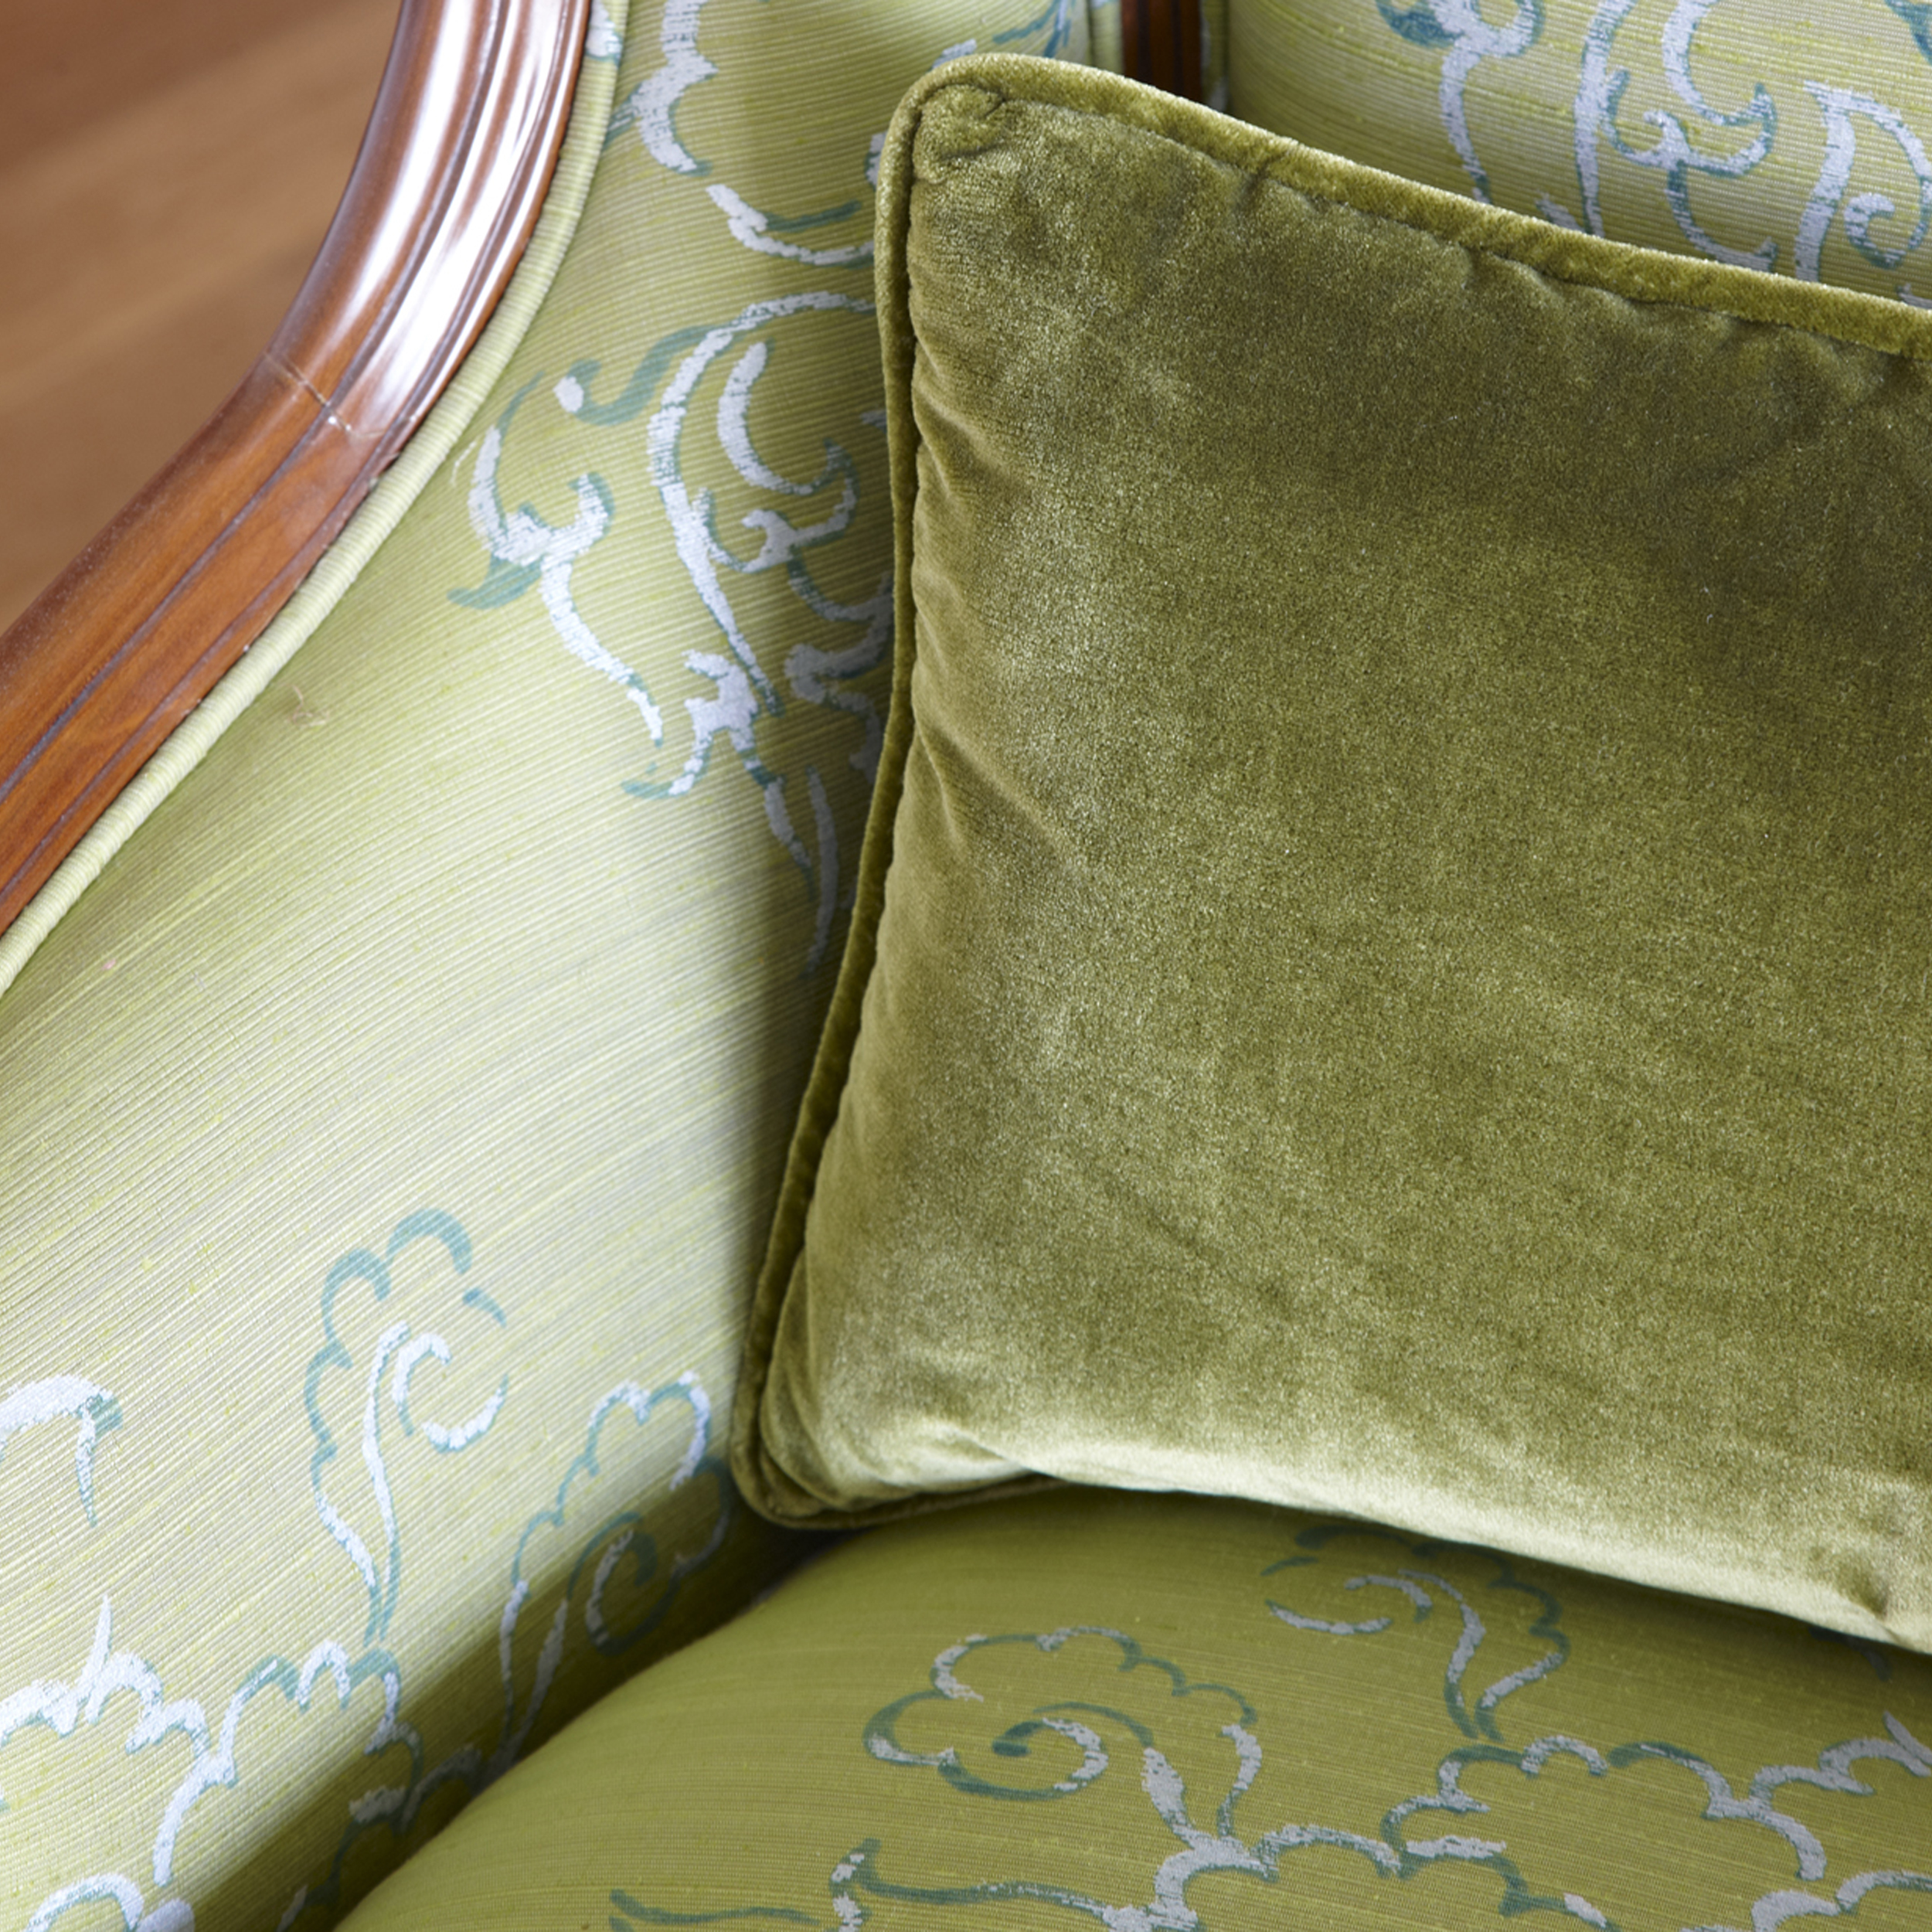 12_15CPW_Upholstery Detail.jpg